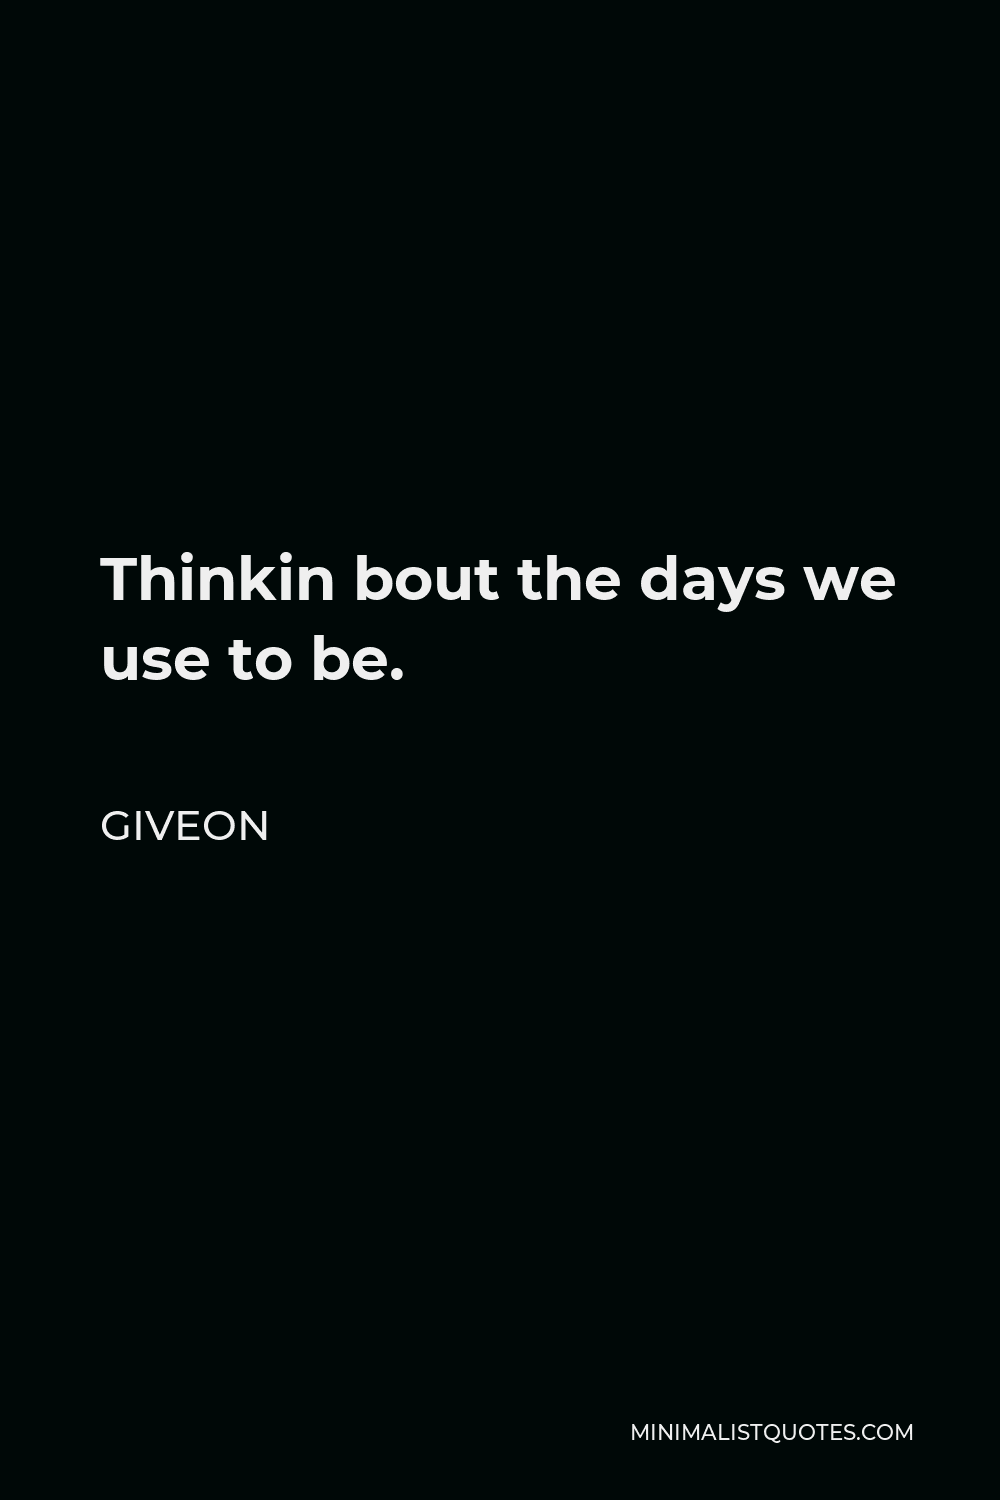 Giveon Quote - Thinkin bout the days we use to be.